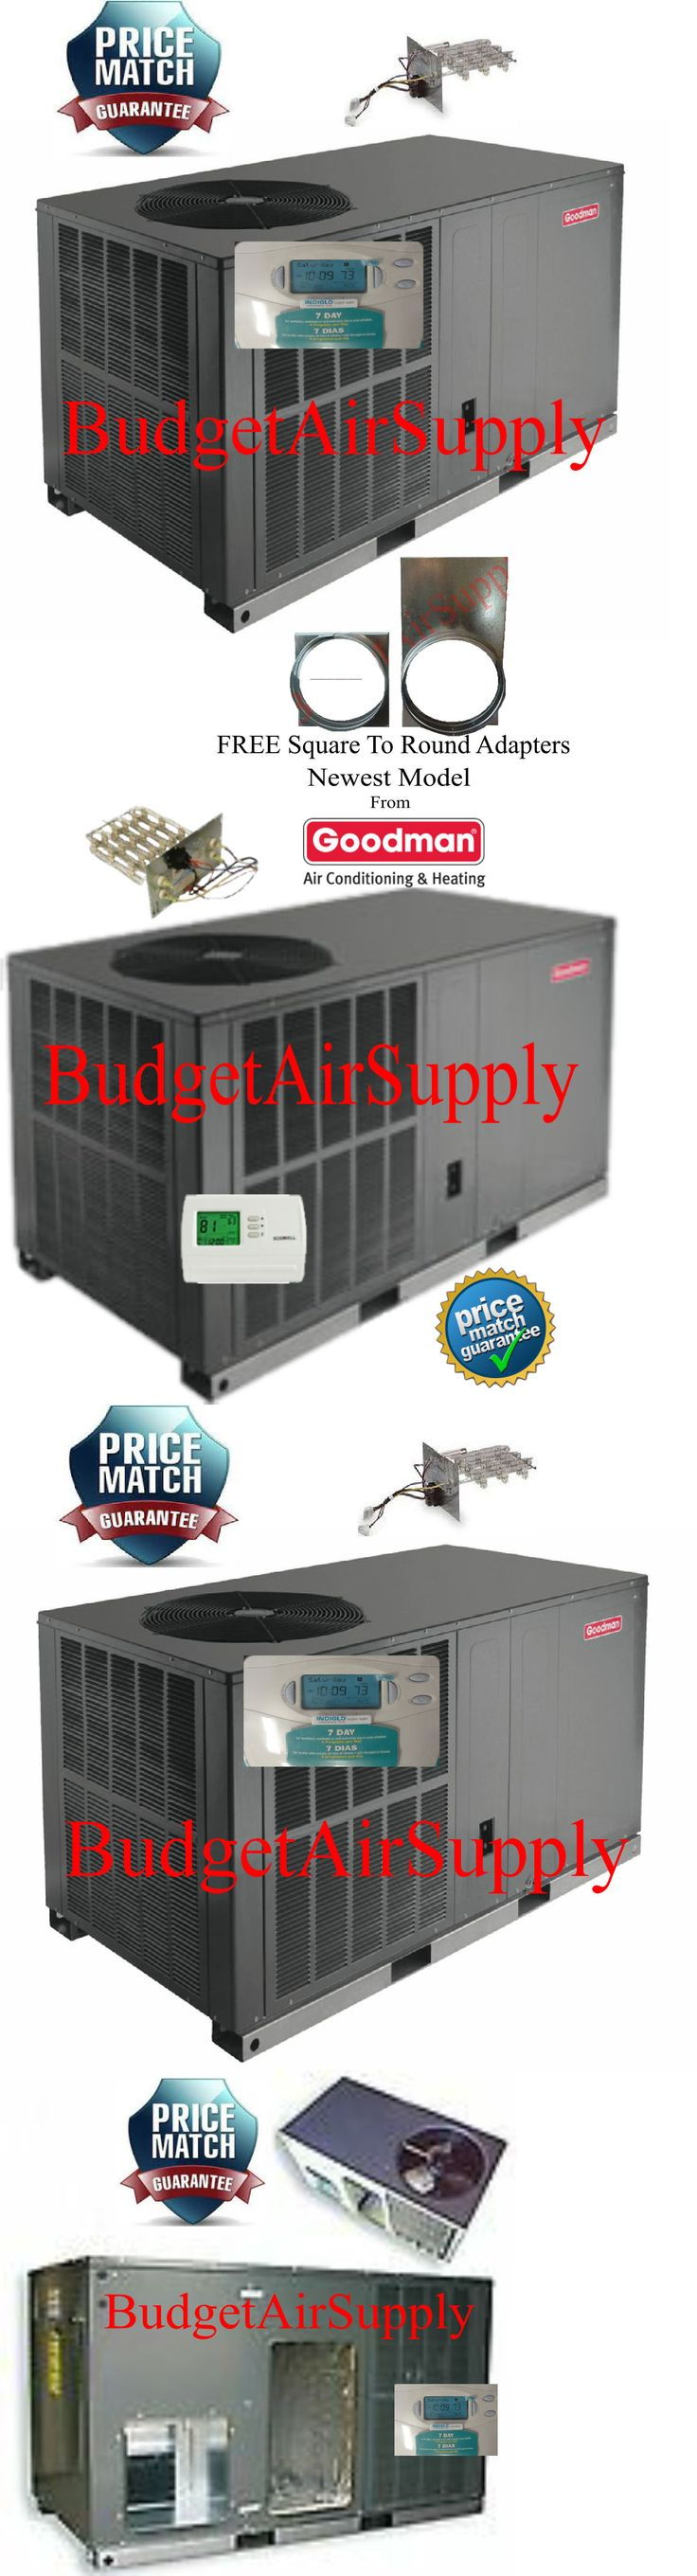 Air Conditioners 69202: 5 Ton 14 Seer Goodman Heat Pump All In One Package Unit Gph1460h4+Sq2rd+Tstat+Ht -> BUY IT NOW ONLY: $2595 on eBay!